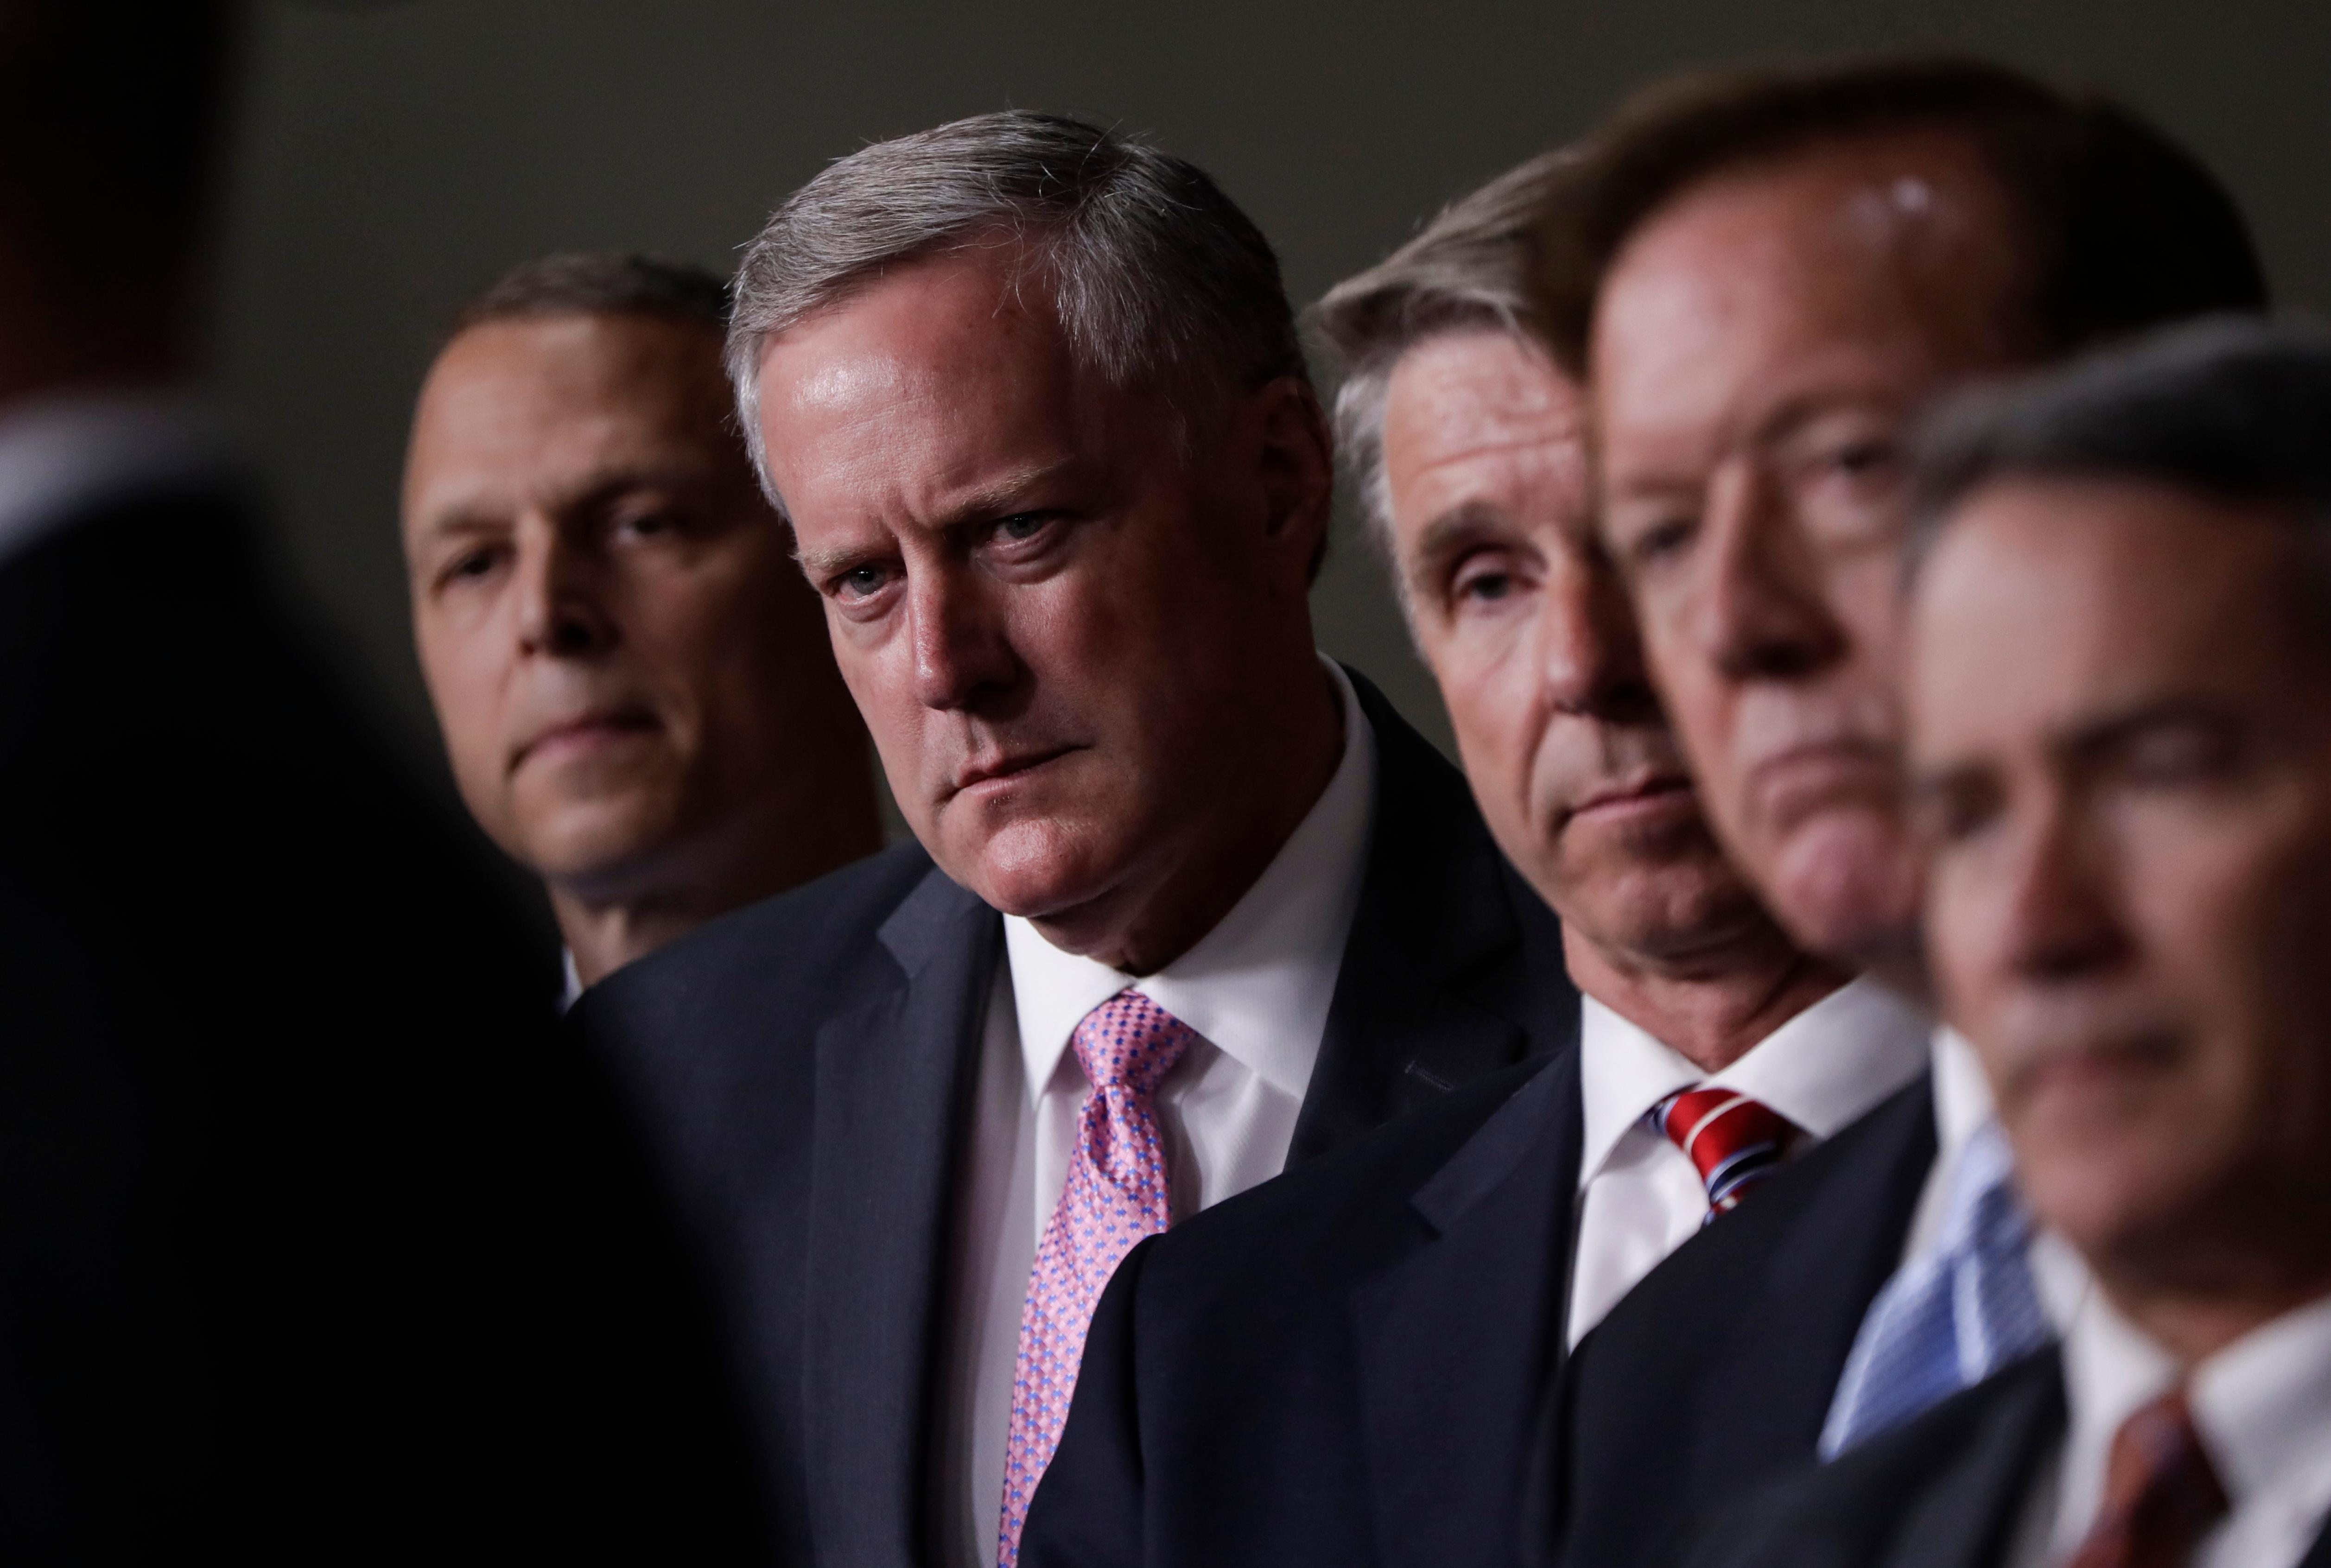 House Freedom Caucus Chairman Rep. Mark Meadows, R-N.C., second from left, and others participate in a news conference on Capitol Hill in Washington, Wednesday, July 12, 2017. (AP Photo/J. Scott Applewhite)